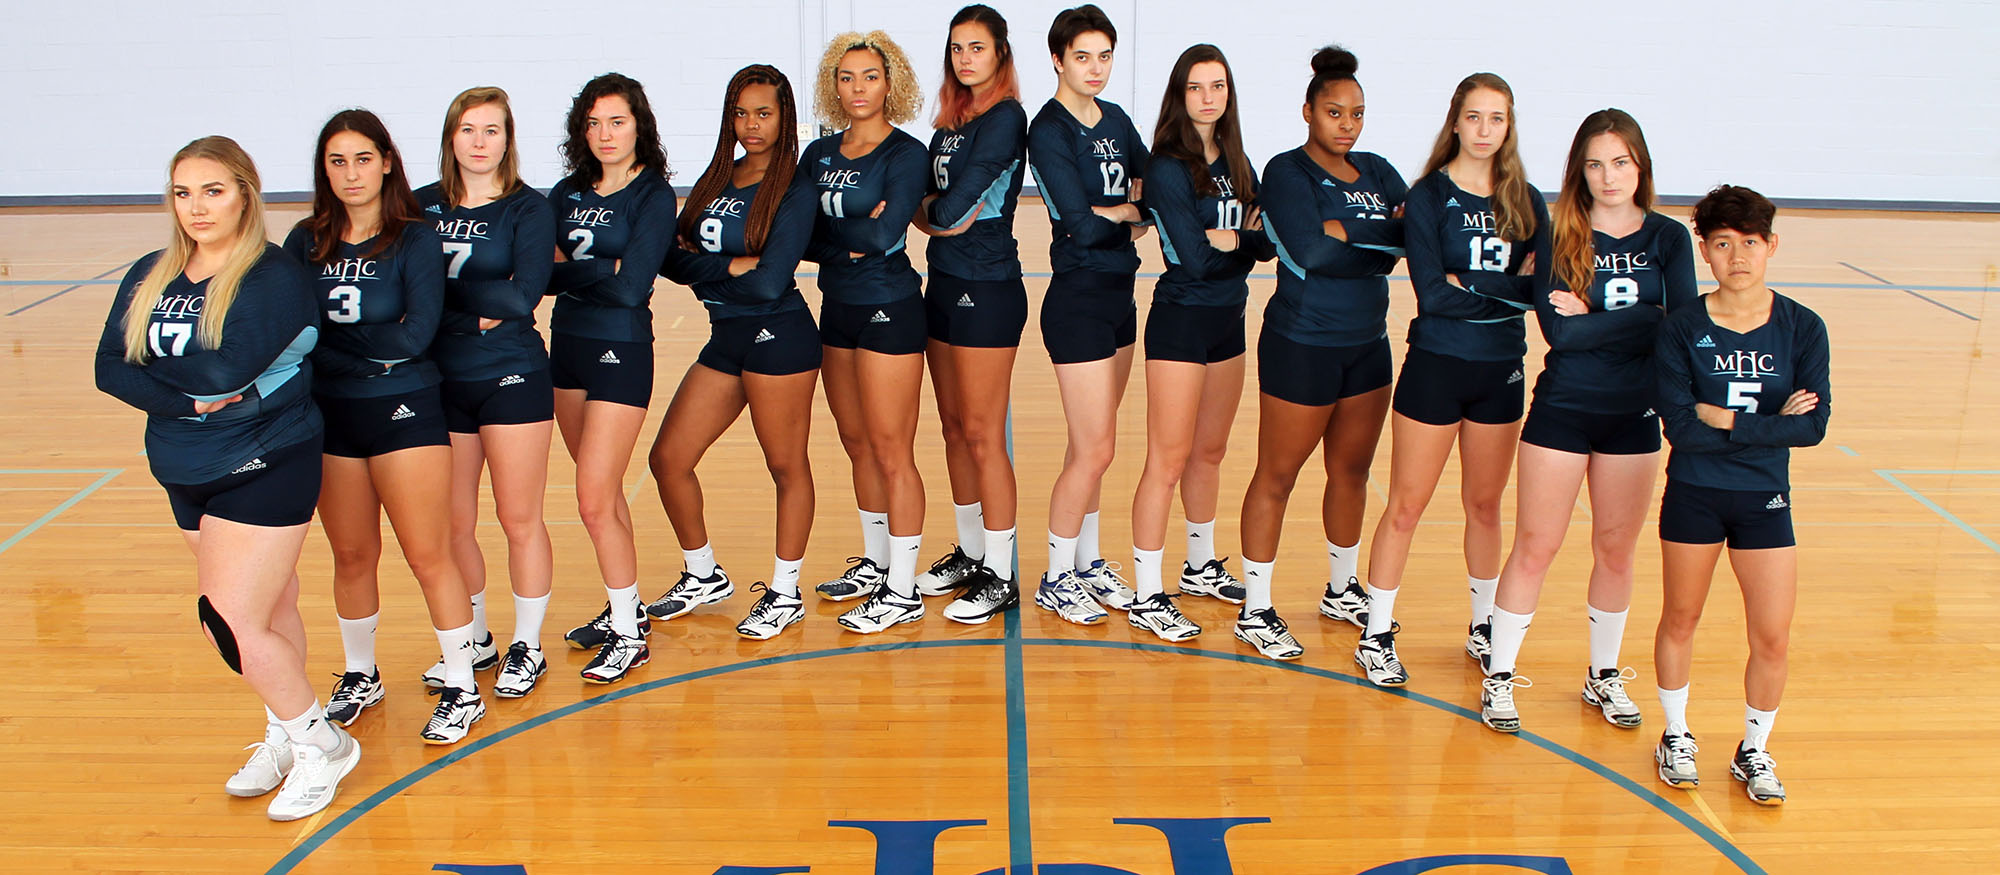 Photo of the 2018 Lyons Volleyball Team